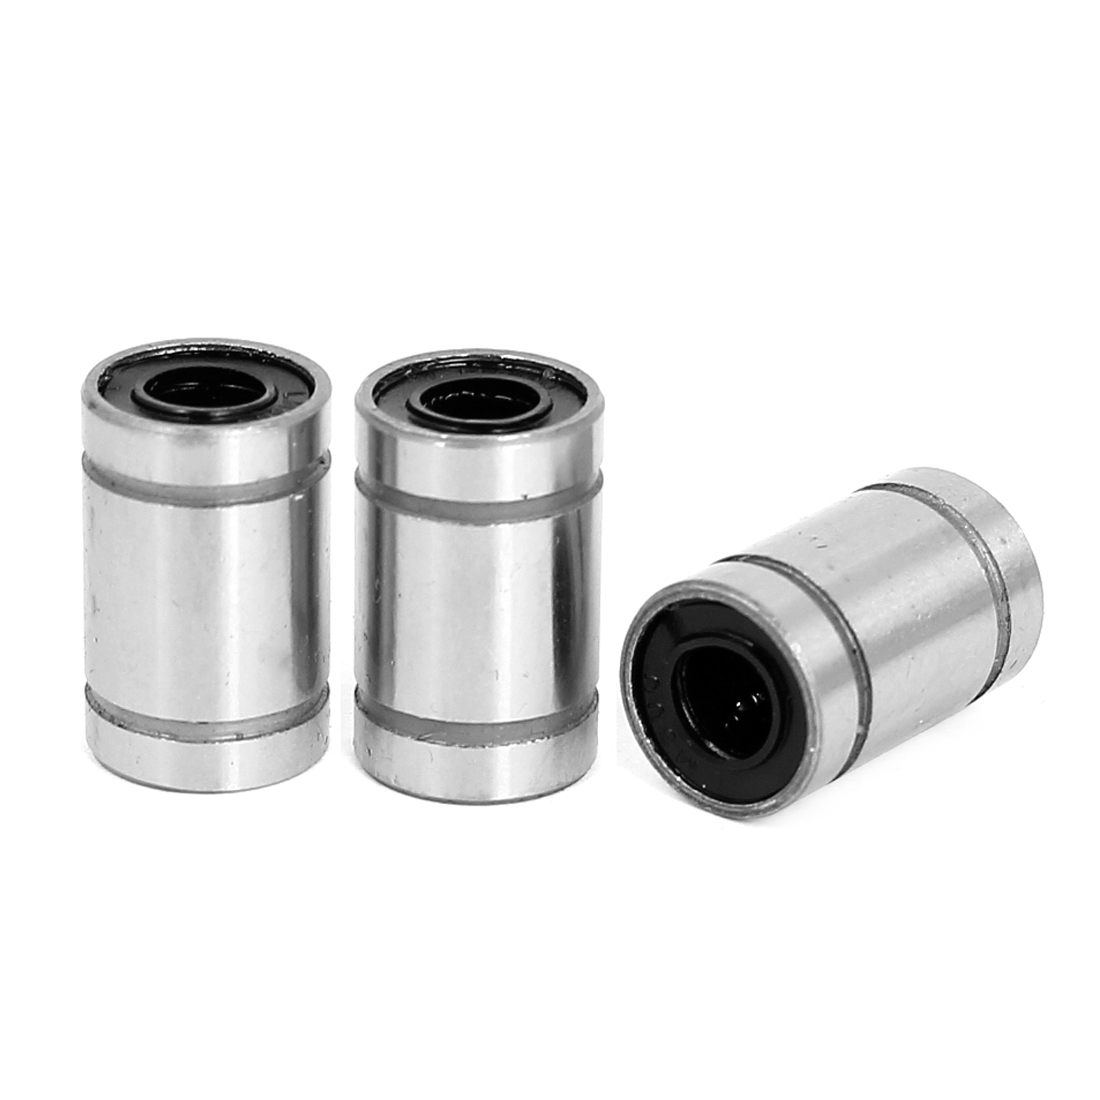 LM6UU Silver Tone Carbon Steel Sealed Rubber Cylinder Shaped Linear Ball Bearing 3pcs